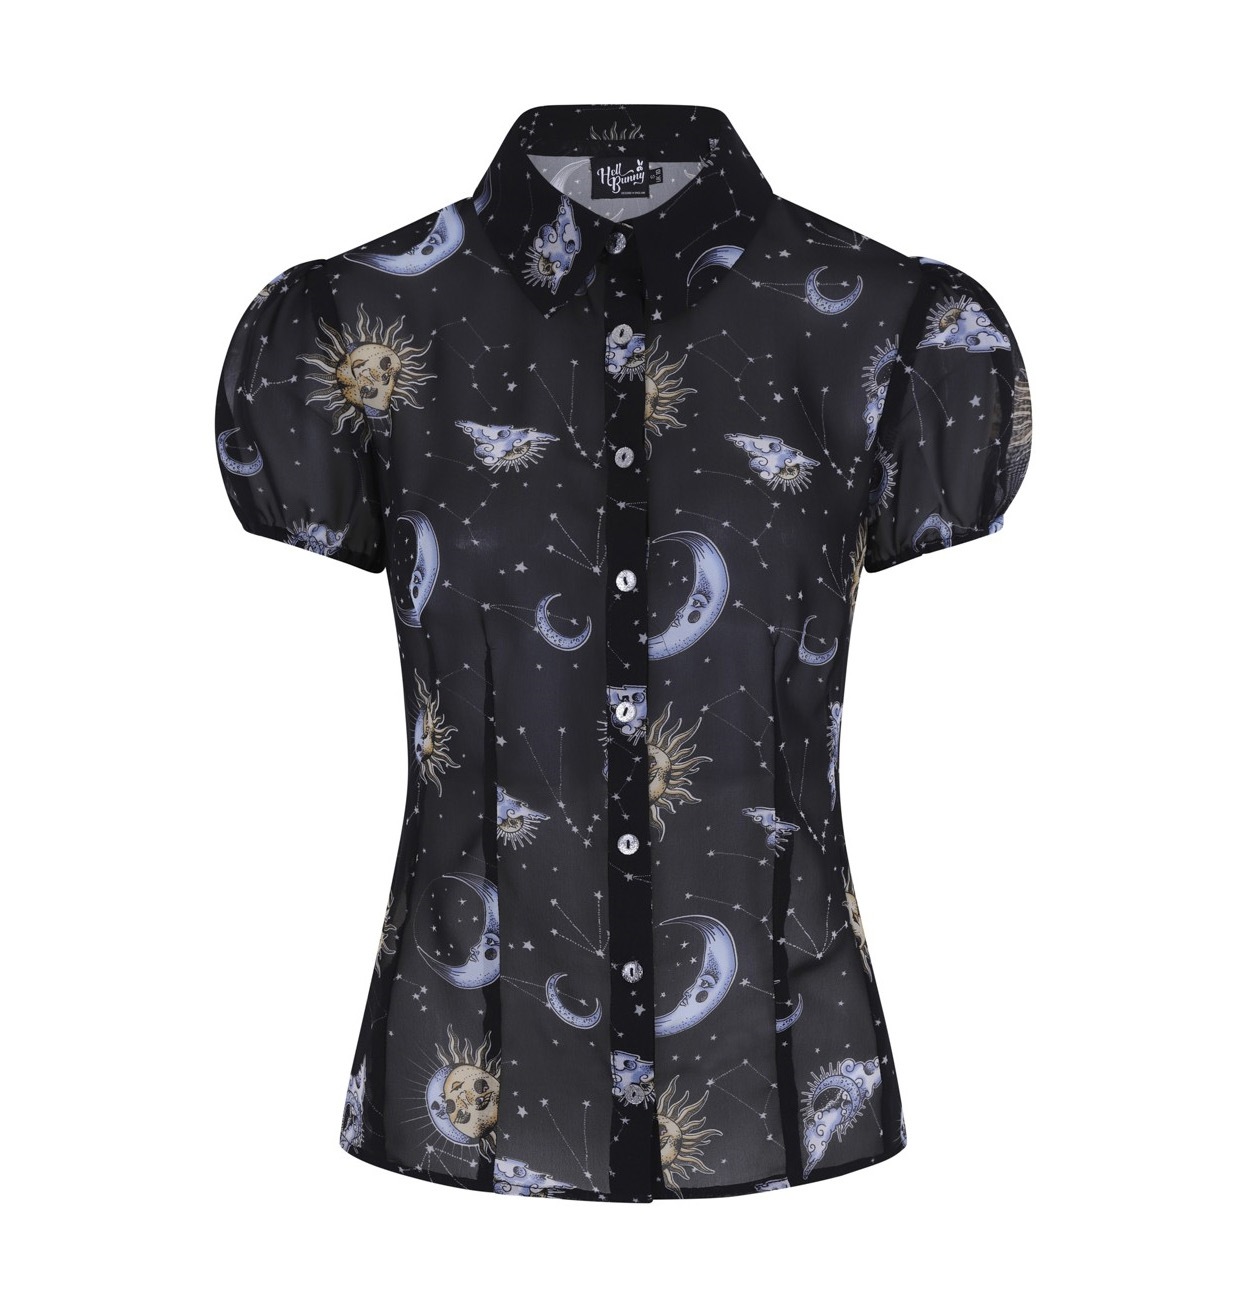 Hell-Bunny-50s-Shirt-Top-Gothic-Black-Sun-Moon-Stars-SOLARIS-Blouse-All-Sizes thumbnail 23